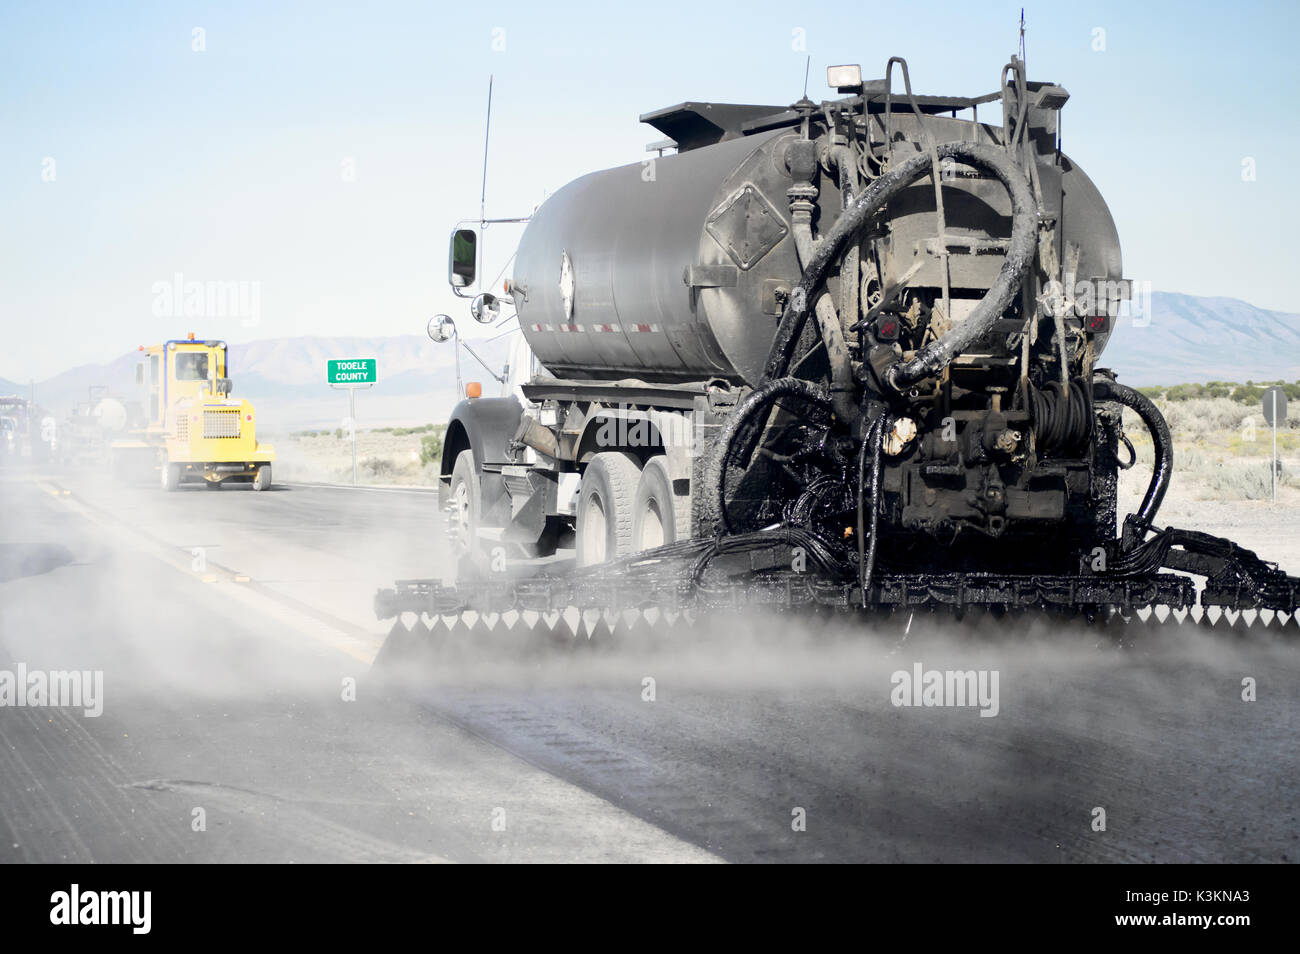 a-black-tanker-truck-spraying-tar-to-res